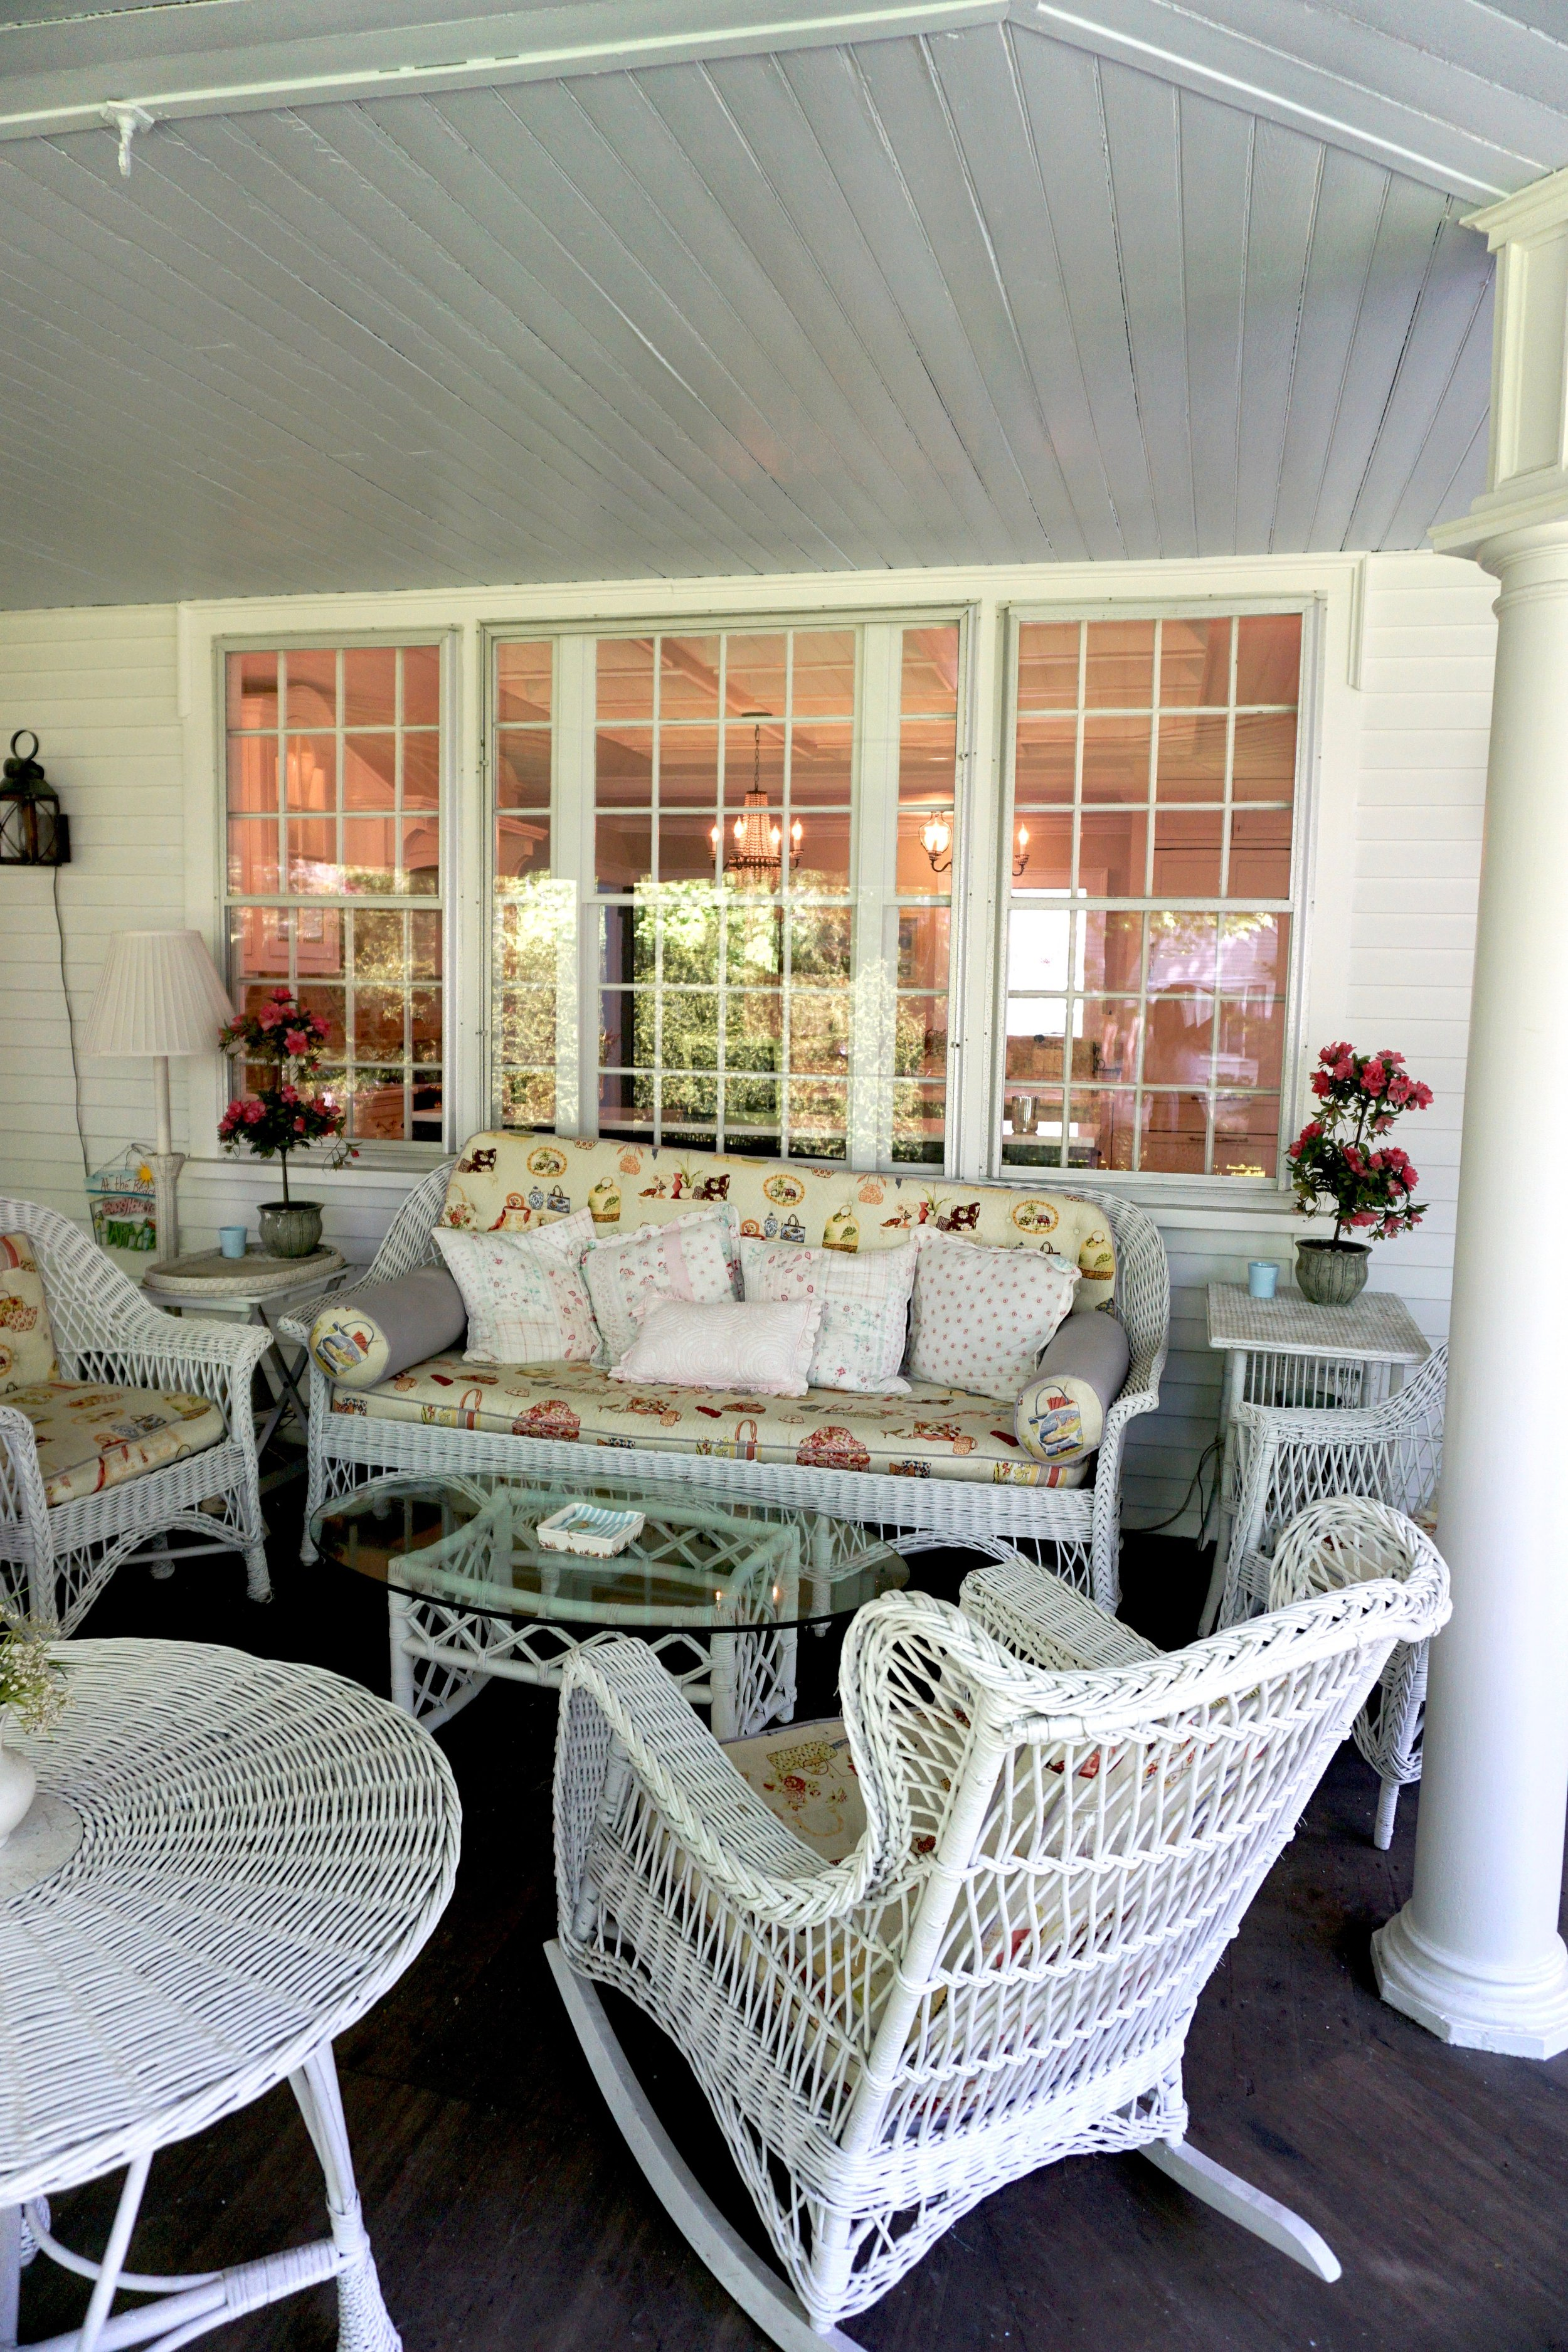 Screened in Porch with Wicker Furniture - Photo by Linda Smith Davis